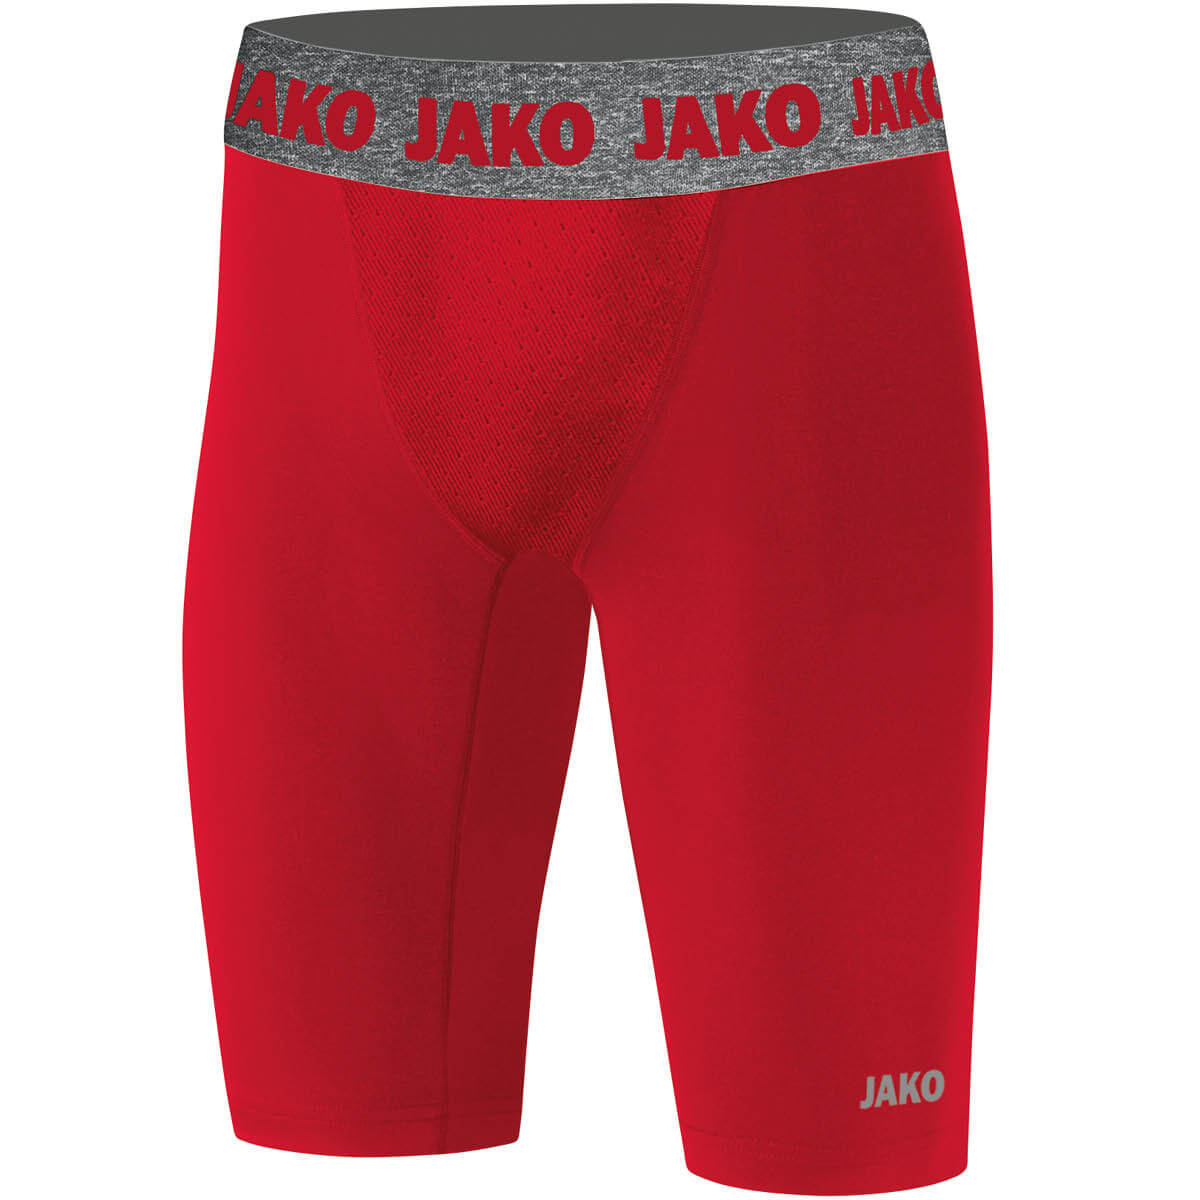 Jako Short Tight Compression 2.0 Kinder 8551  | div. Größen / Farben